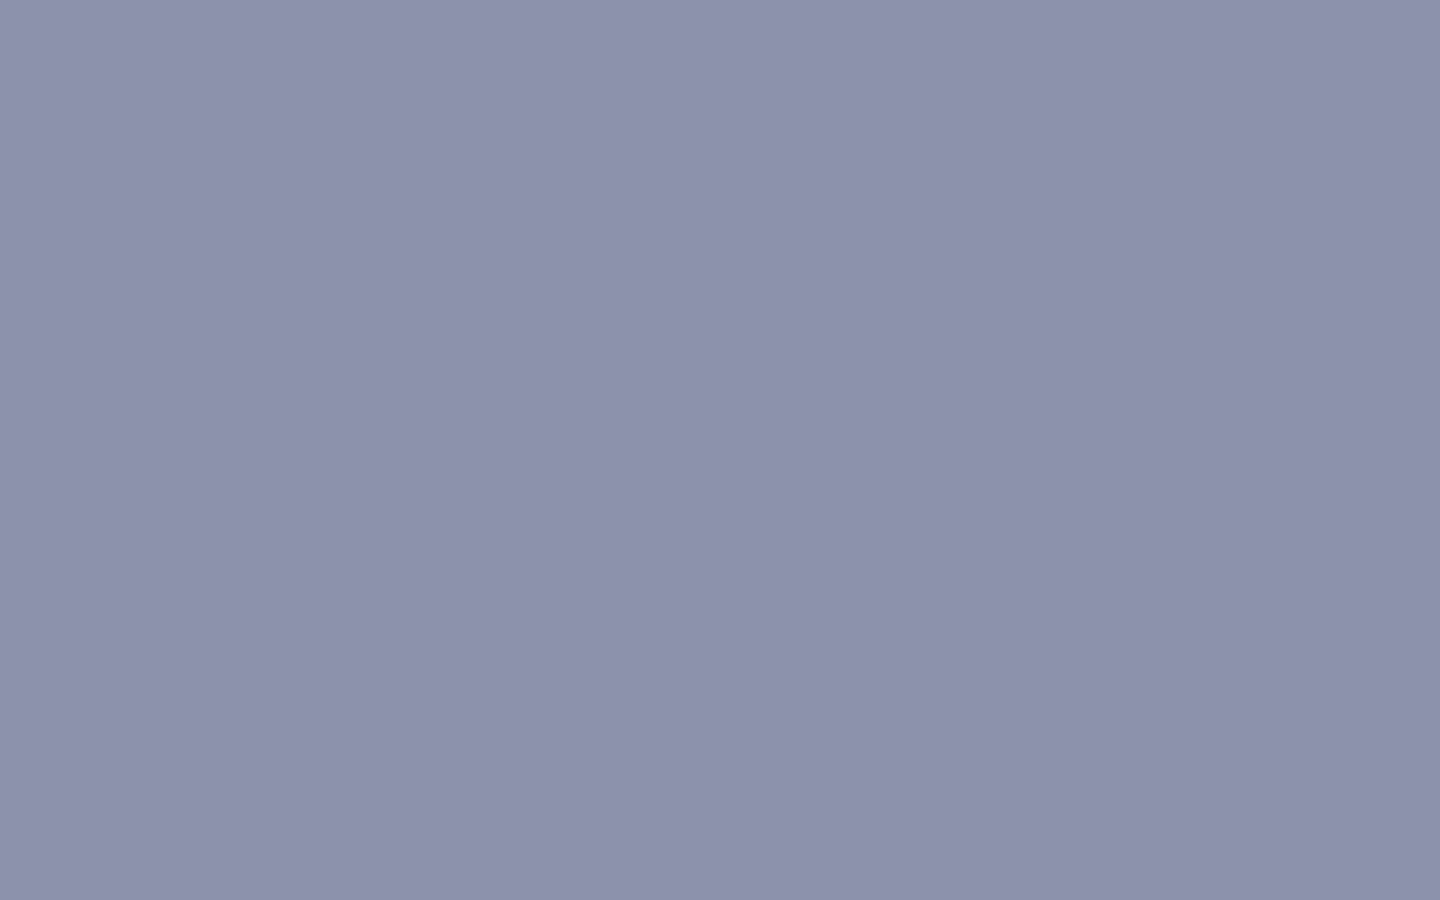 1440x900 Gray-blue Solid Color Background